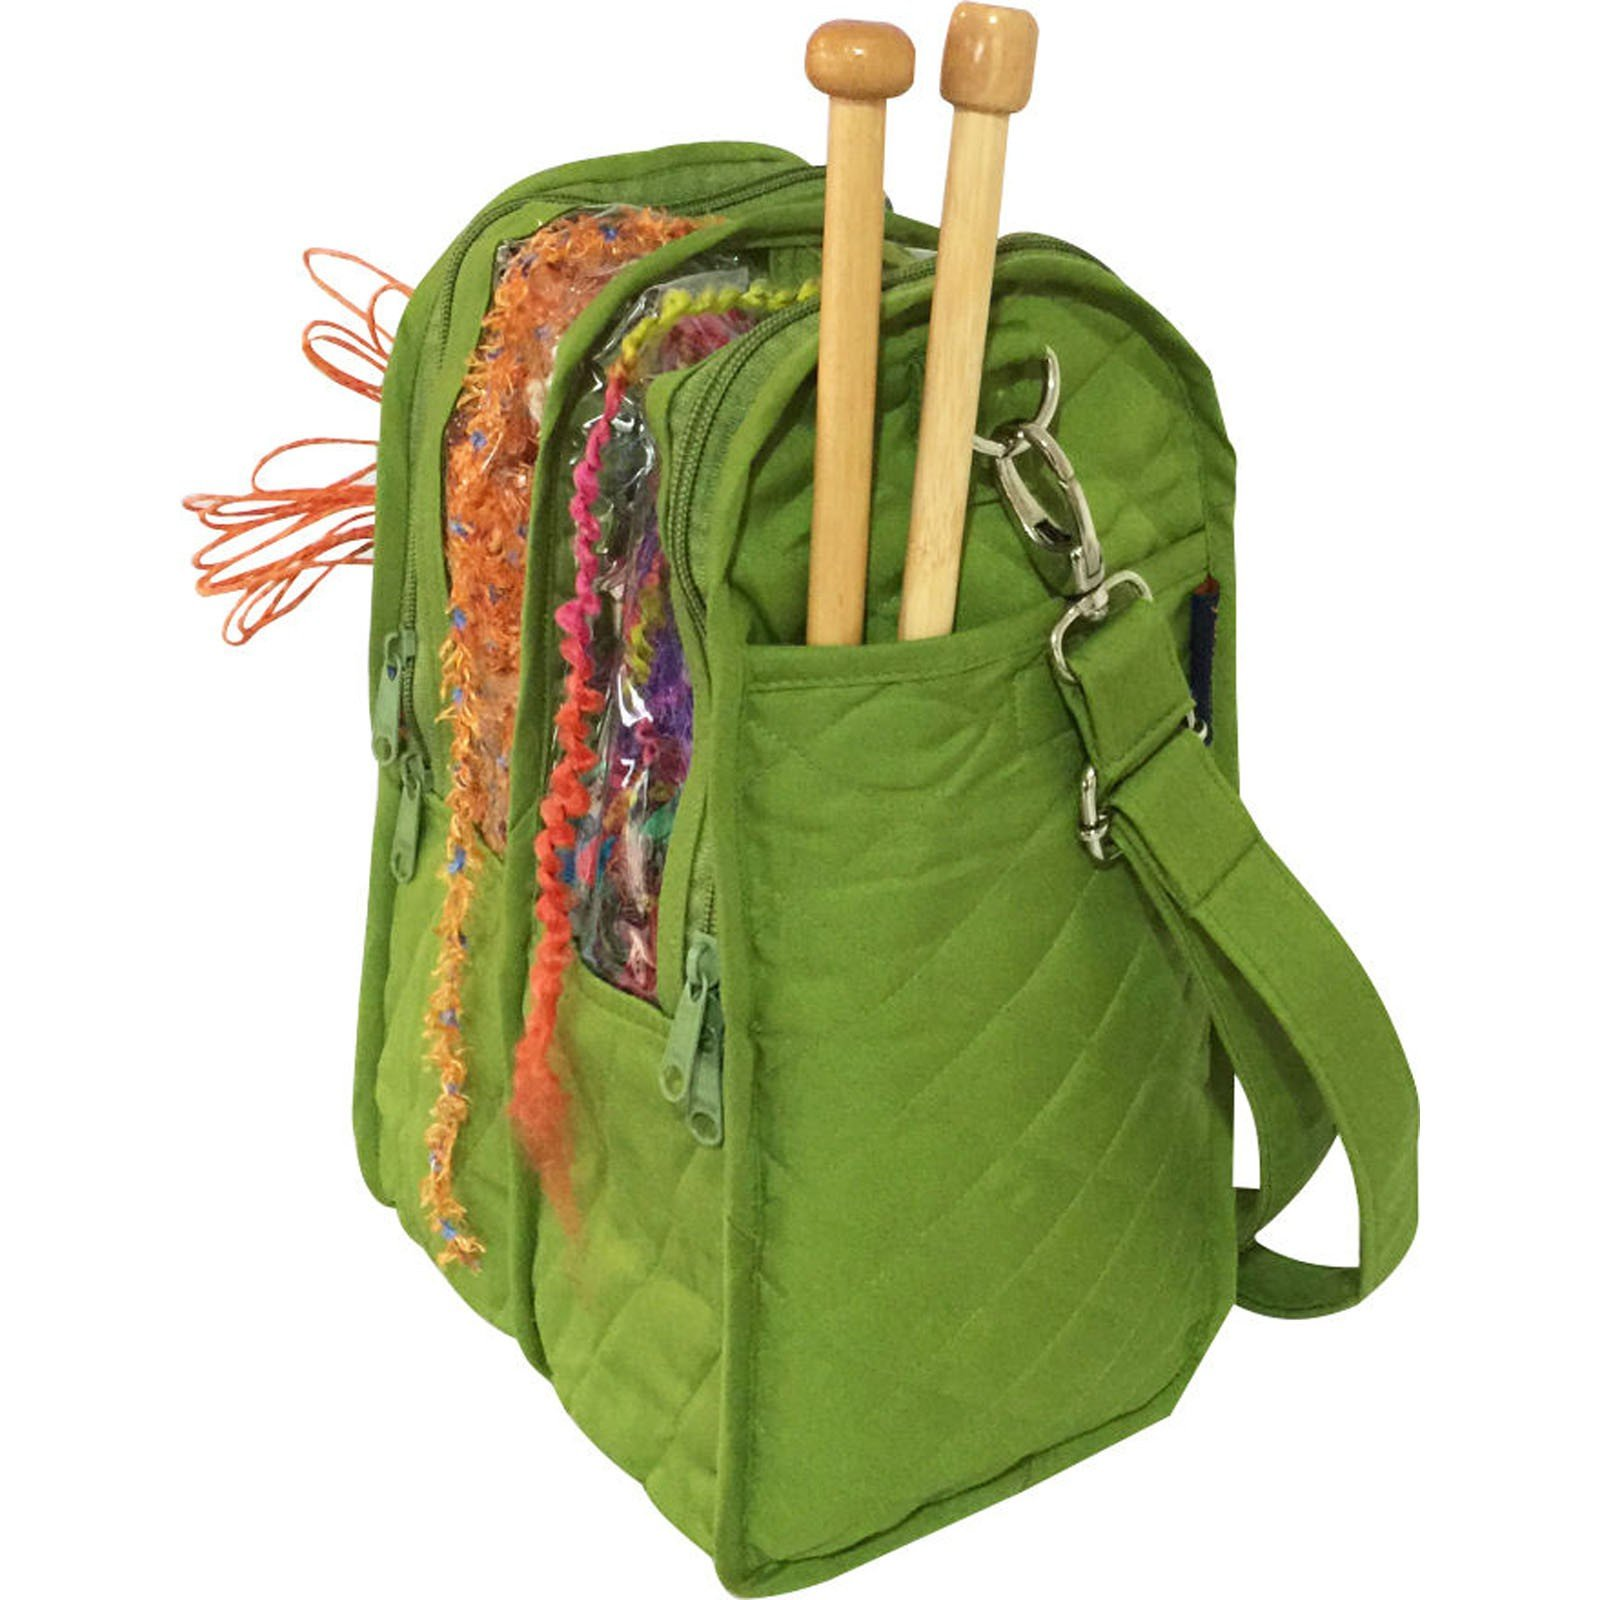 Knitting Carry Tote